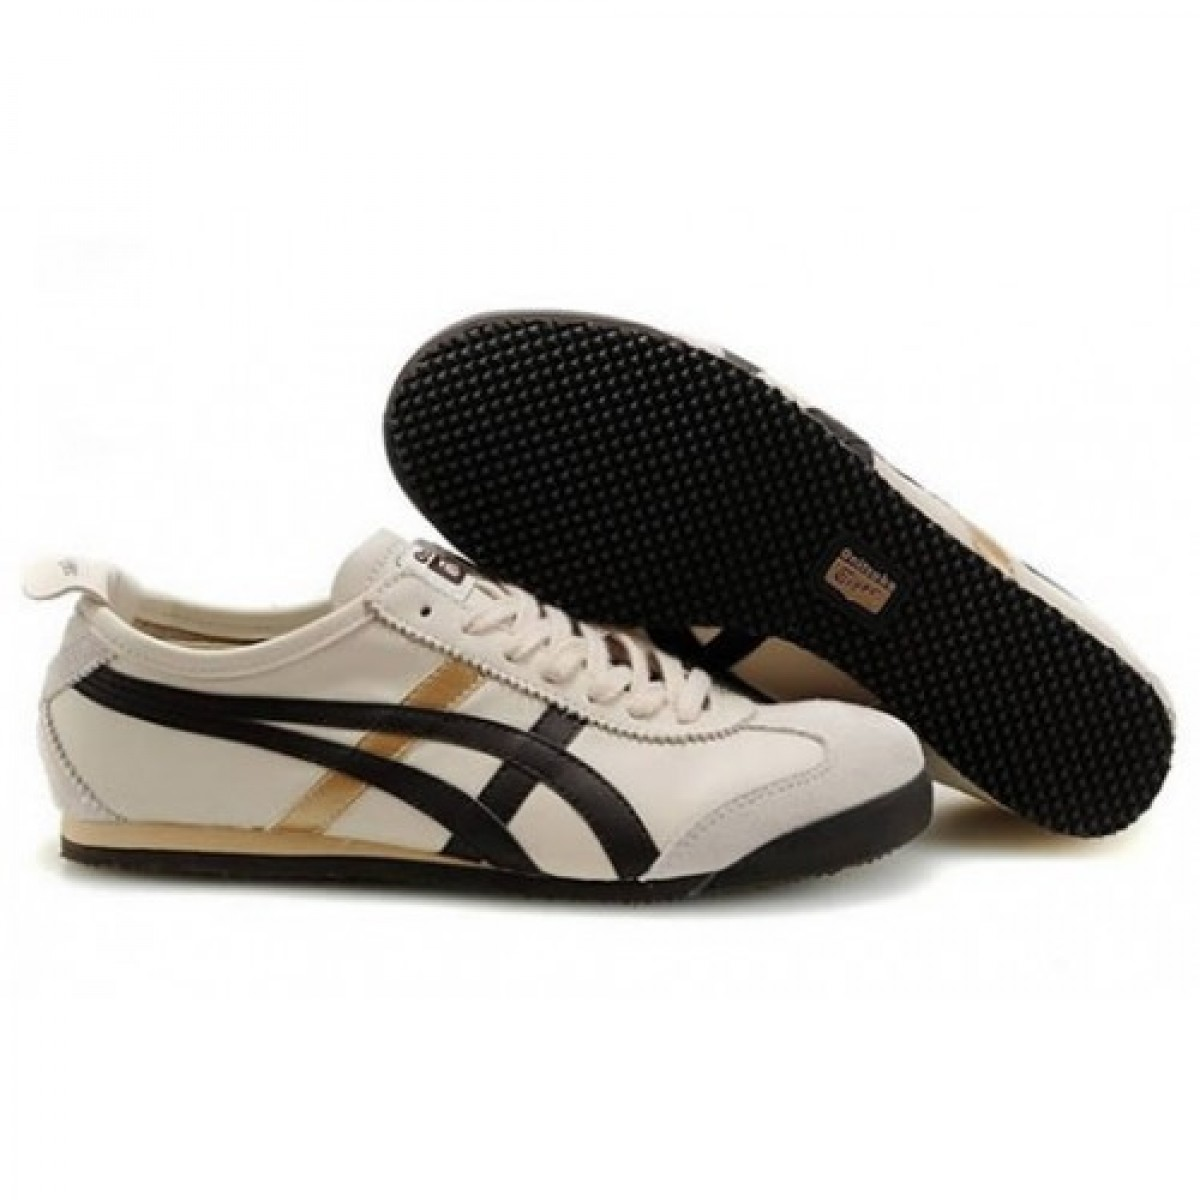 GG3531 Chaussures Soldes Asics Onitsuka Tiger Mexico 66 Femmes Beige Marron Or 25946182 Pas Cher